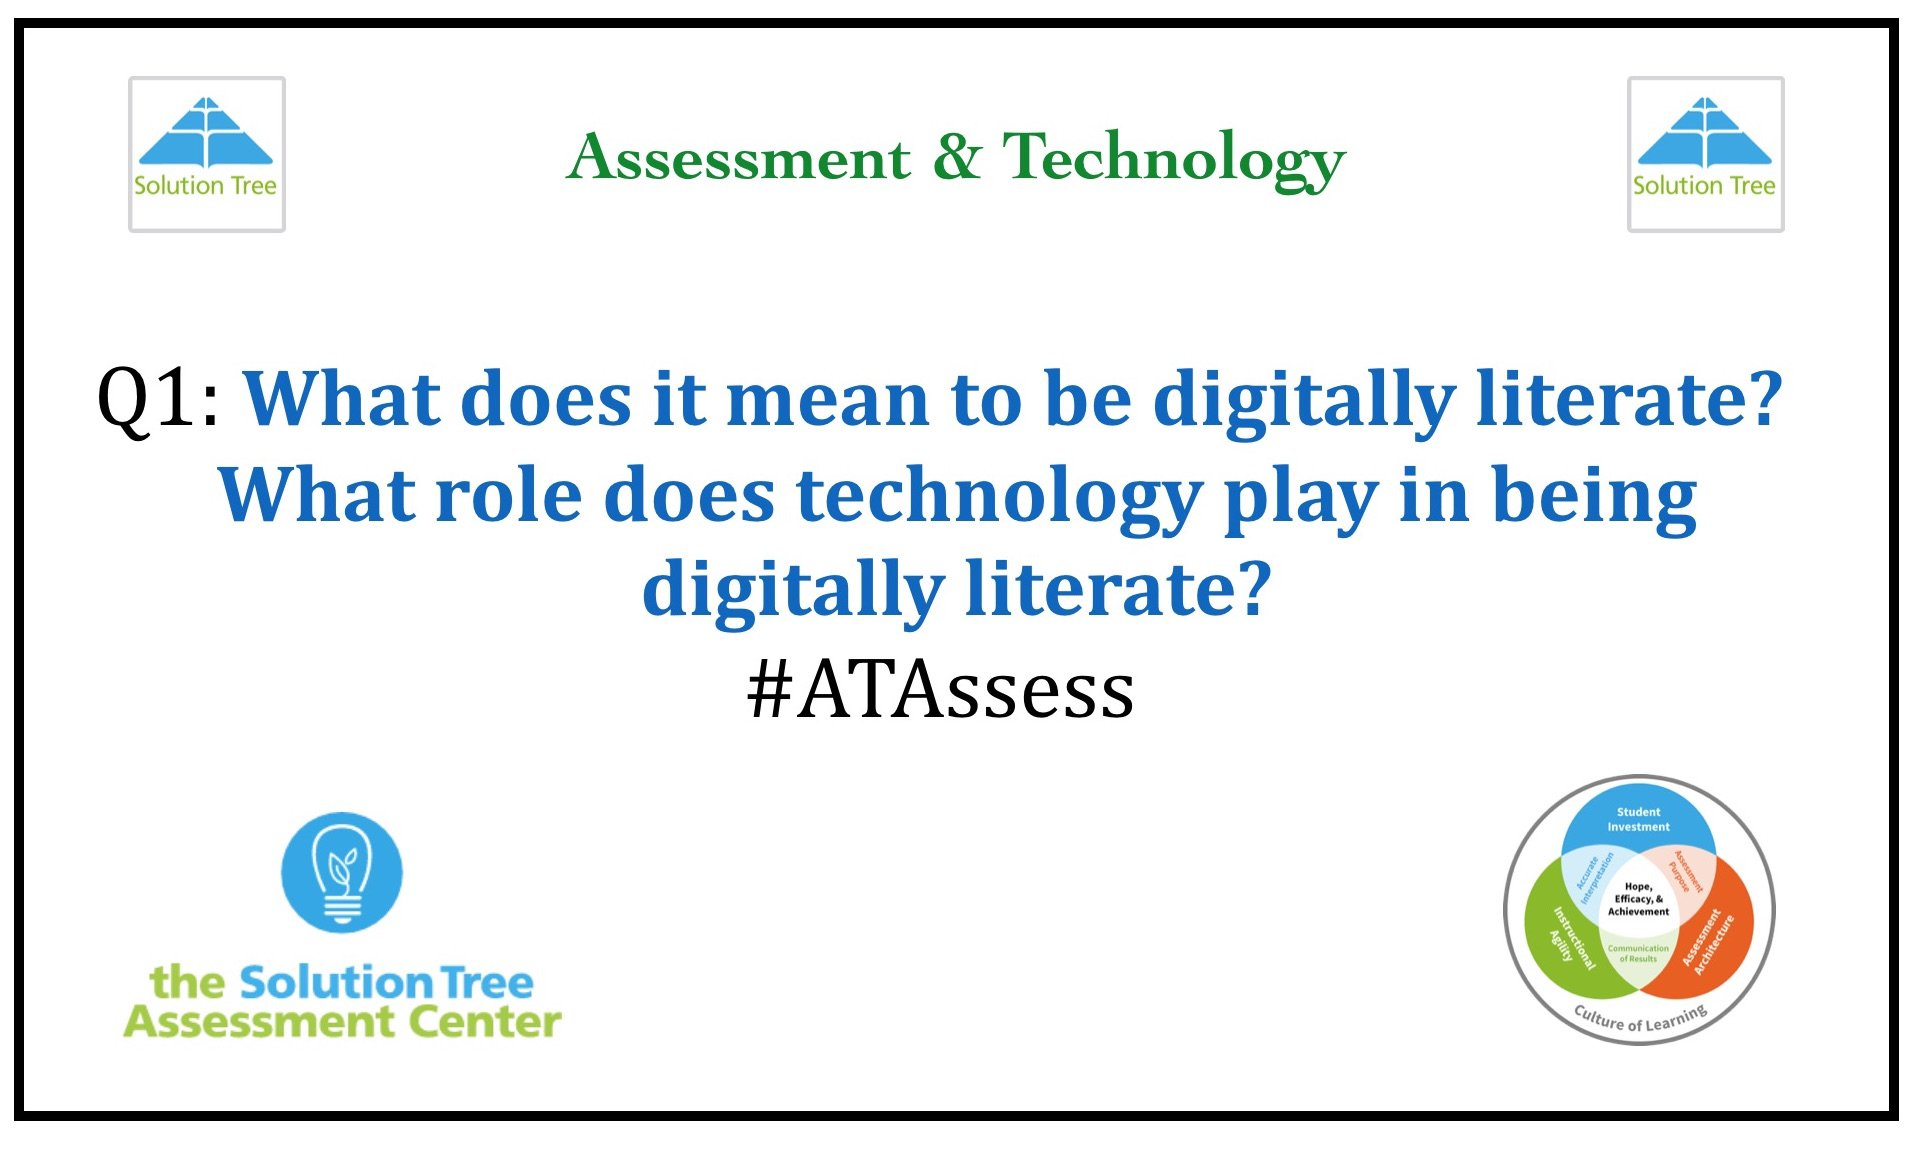 Q1: What does it mean to be digitally literate? What role does technology play in being digitally literate? #ATAssess https://t.co/6W6C9ZJJog